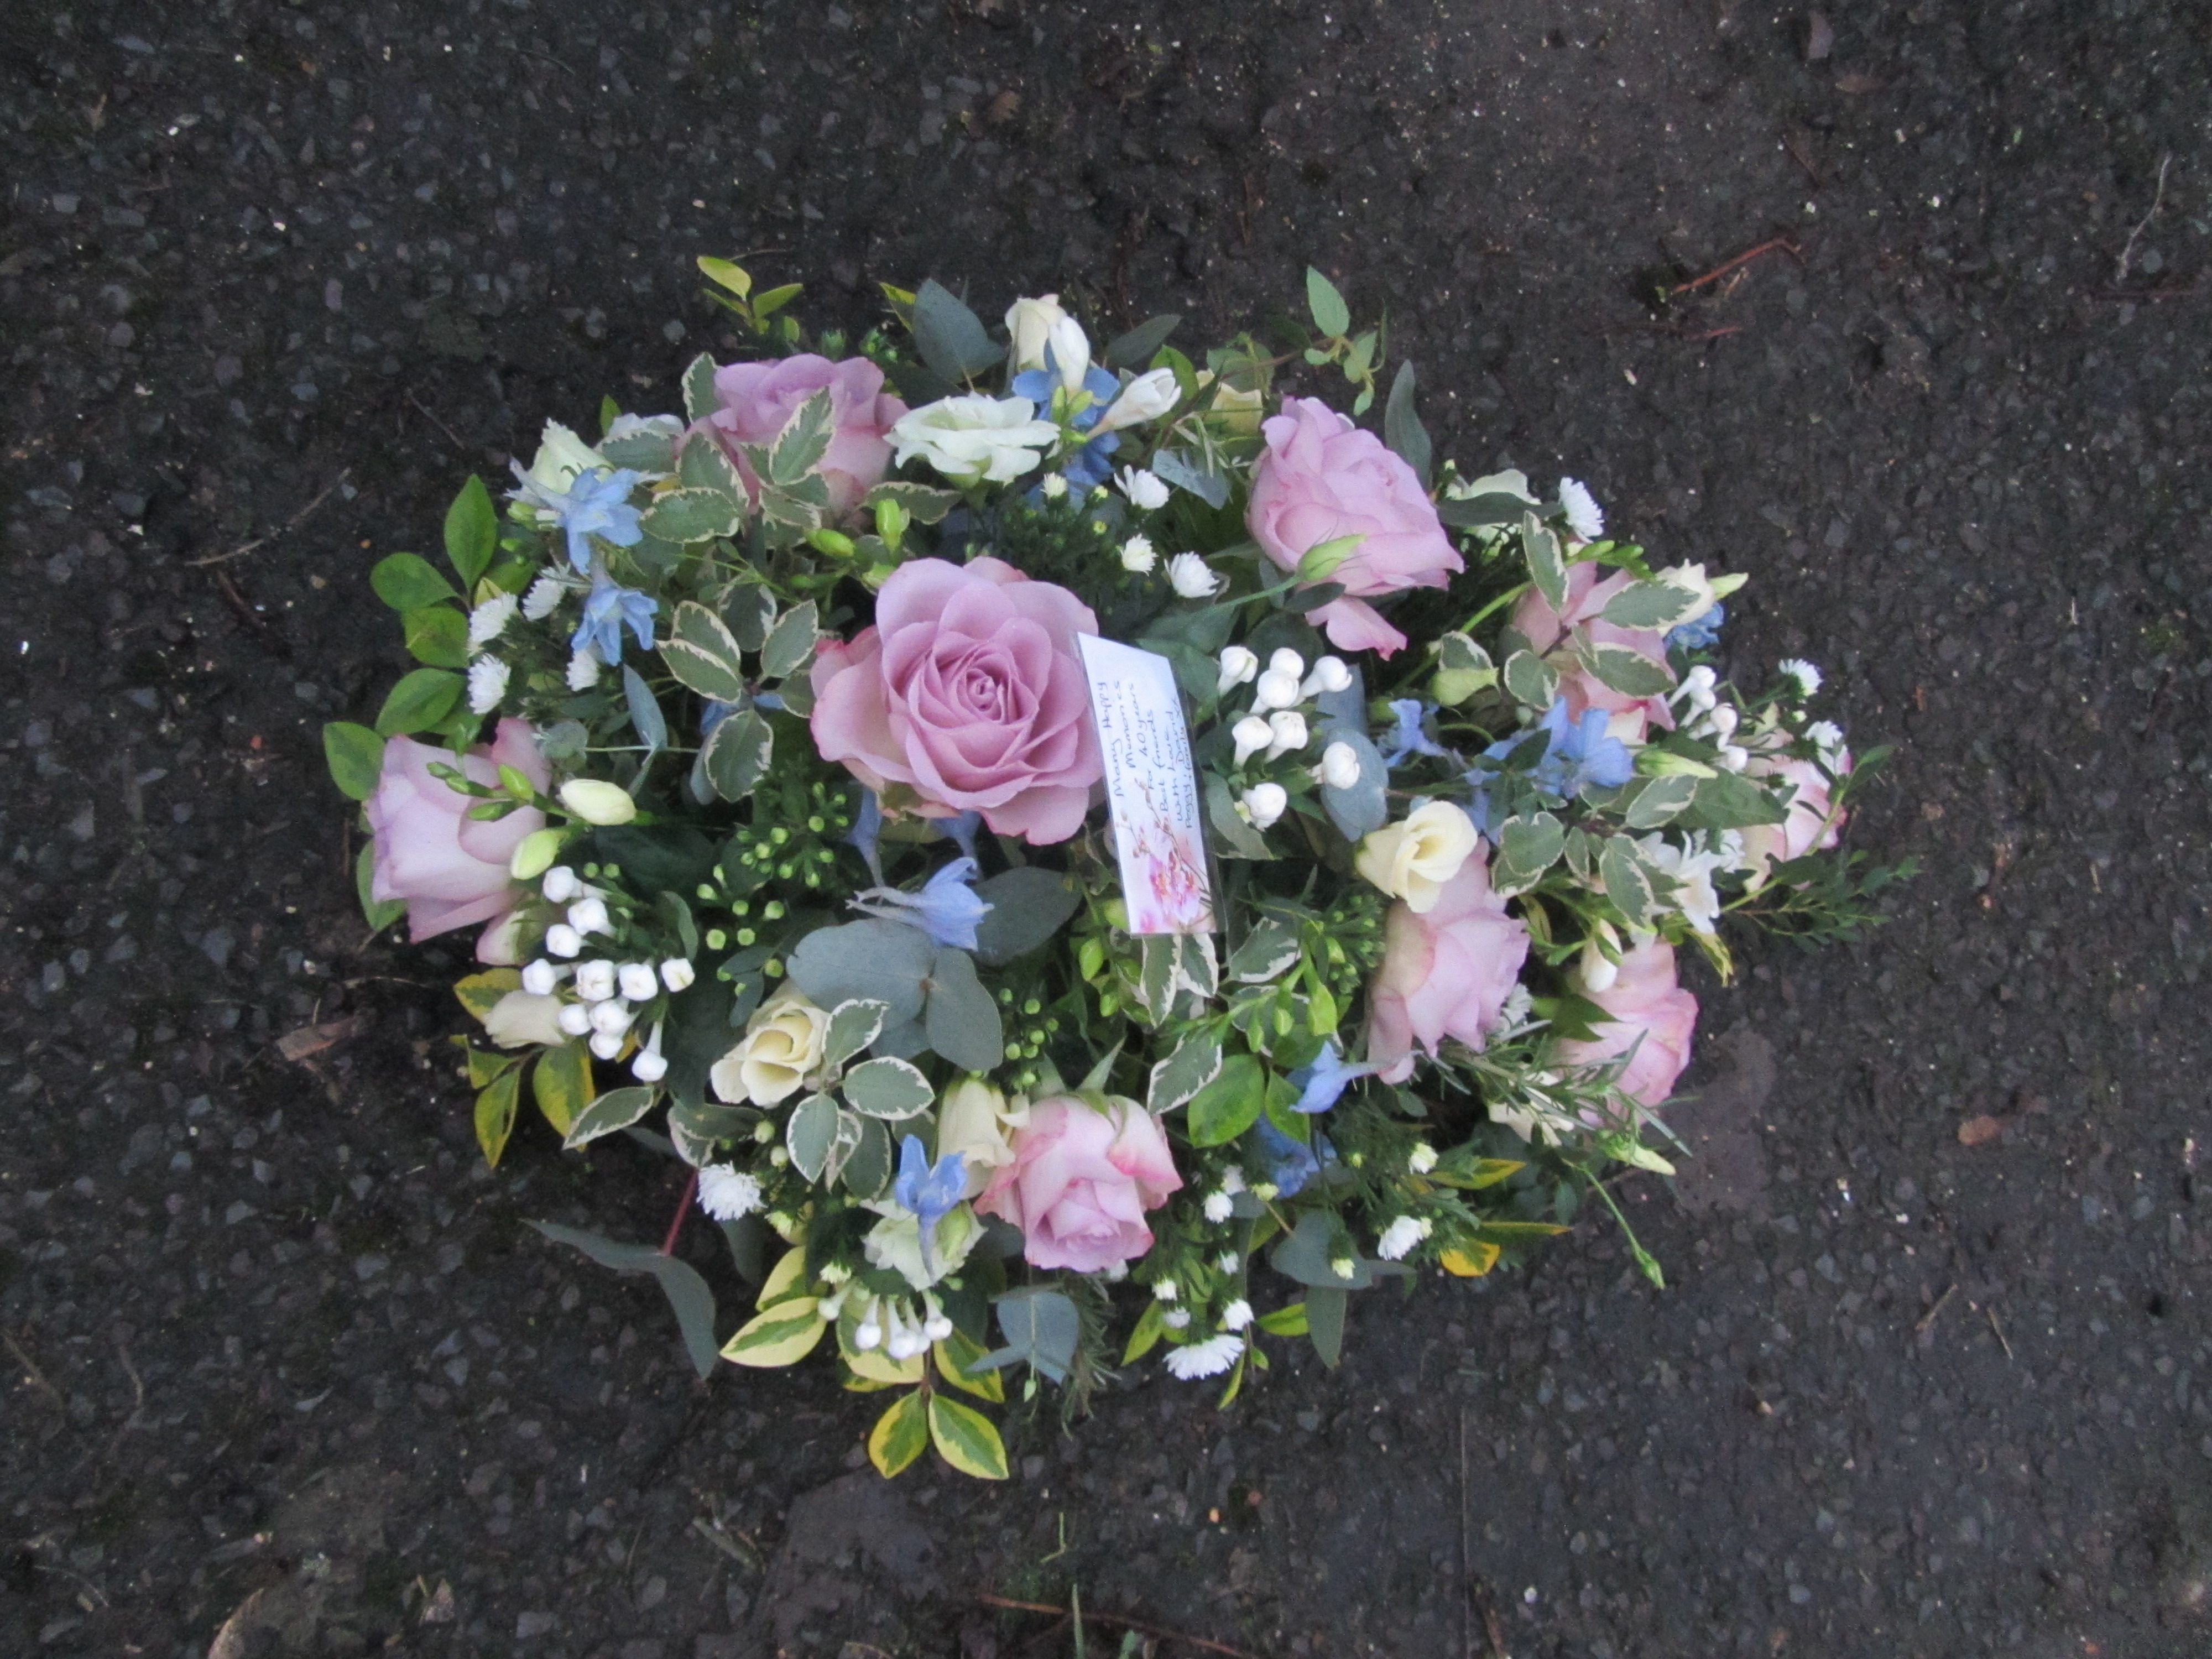 Clarity Flower Can Provide A Personal Service For Your Funeral Sympathy Flowers We Provide A Unique Handmade Ar Sympathy Flowers Flowers Beautiful Flowers